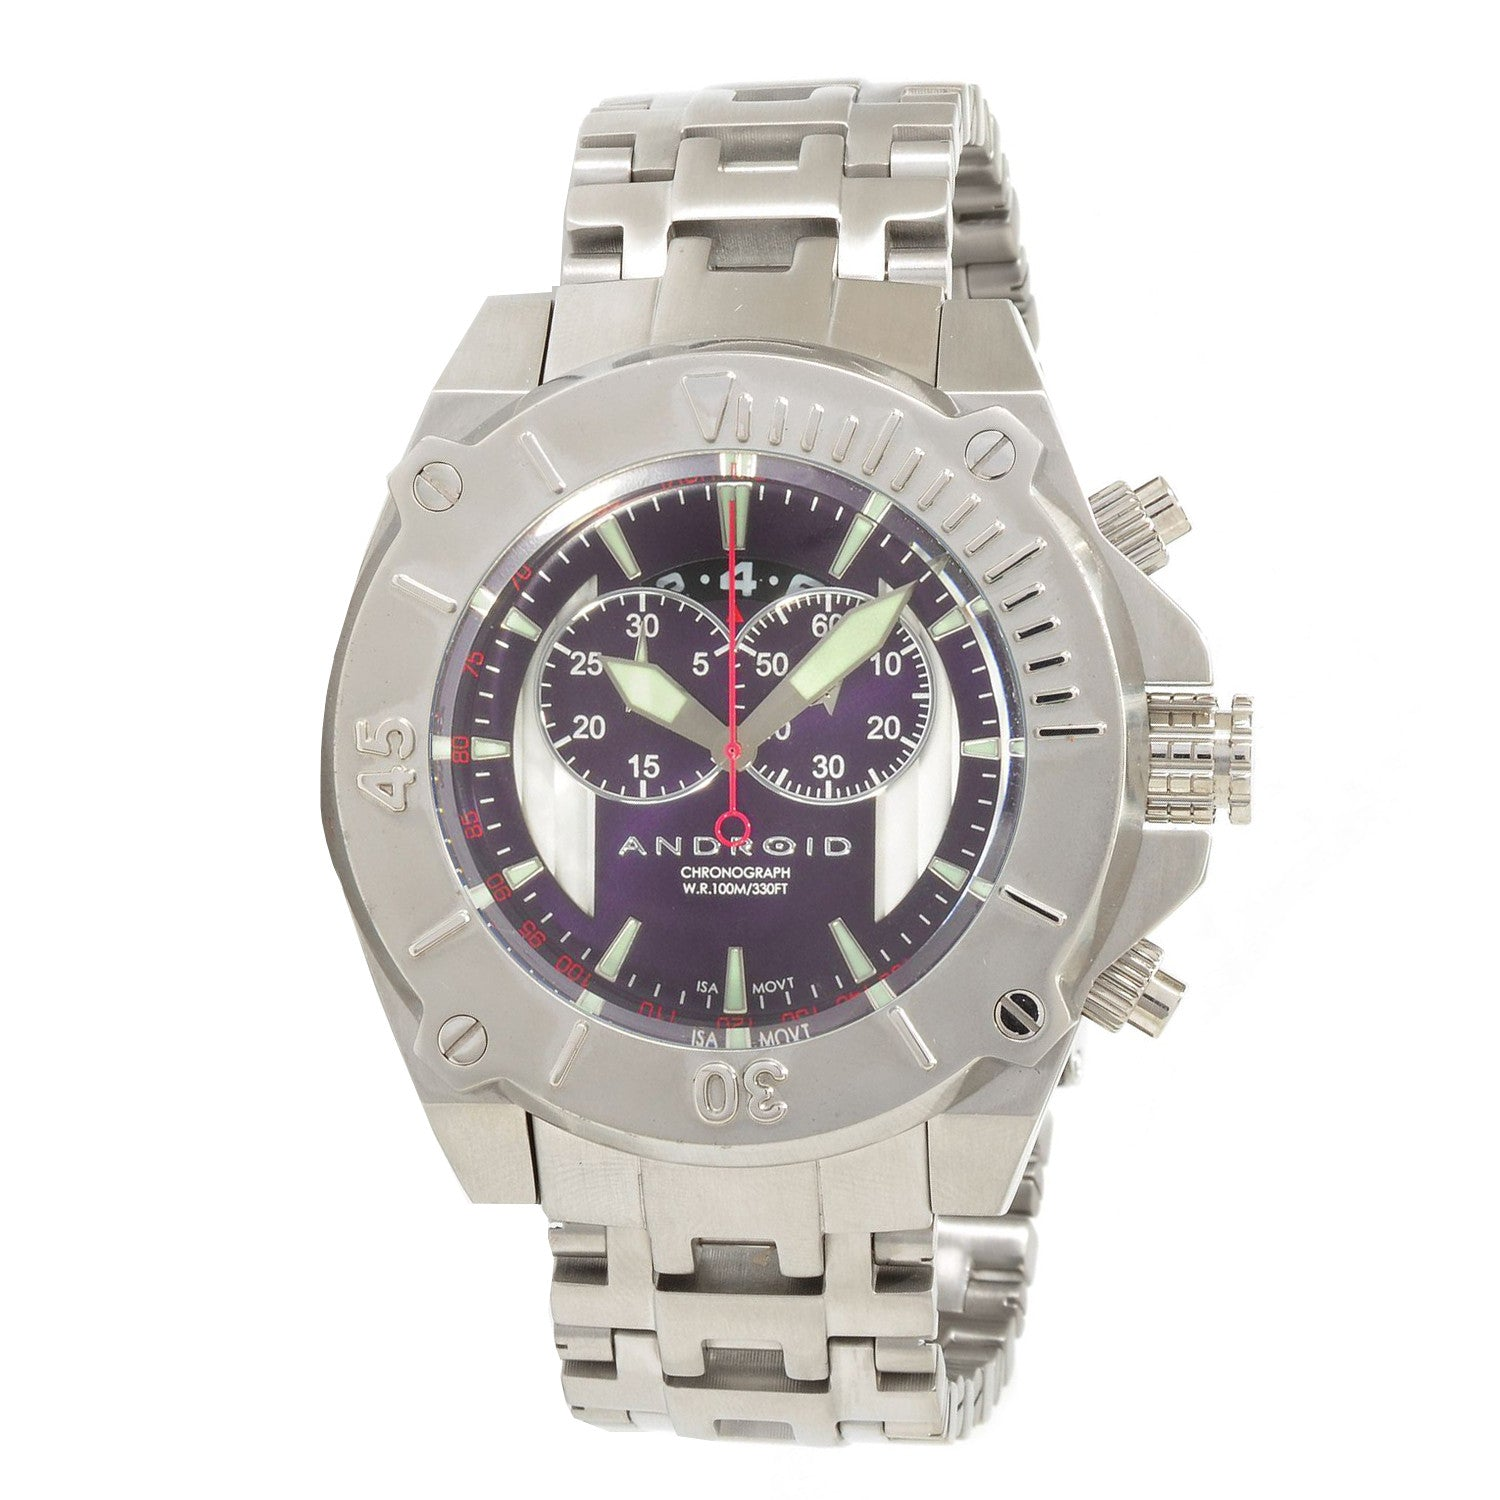 Android AD450BPU Men's Silverjet-2 Swiss Chronograph Watch